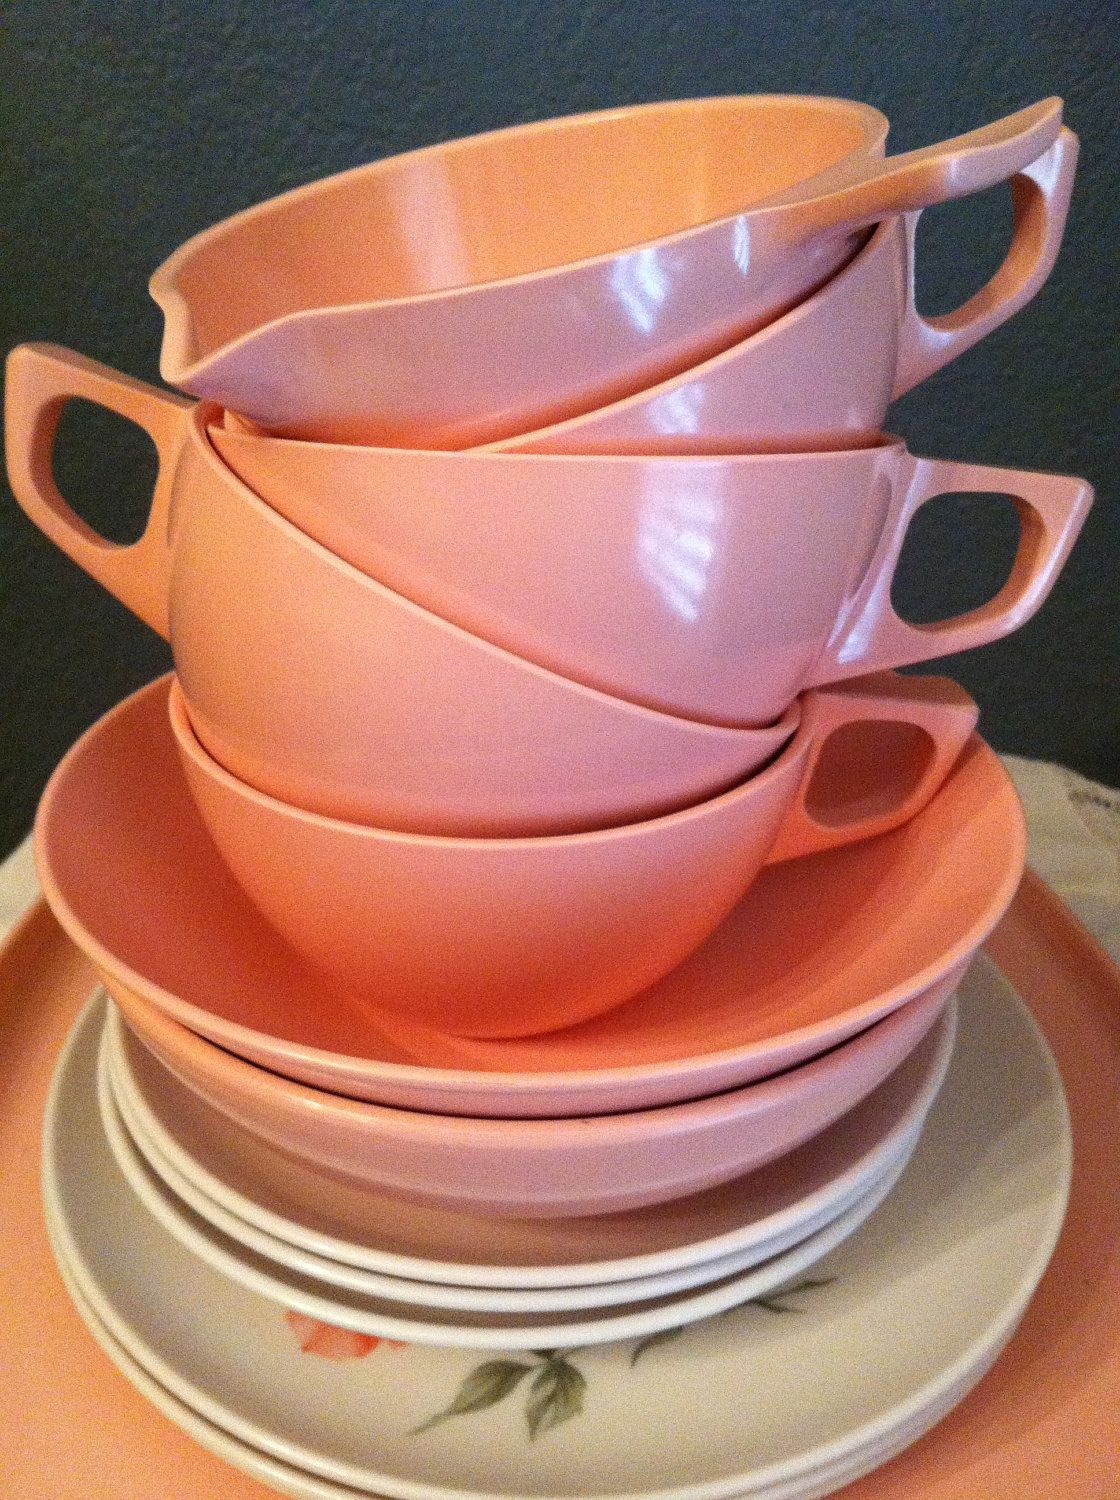 Items similar to Stetson Melmac Dinnerware Mixed Lot Vintage on Etsy & Stetson 1950s Melmac Dinnerware Mixed Lot Vintage by VintagebyJen ...